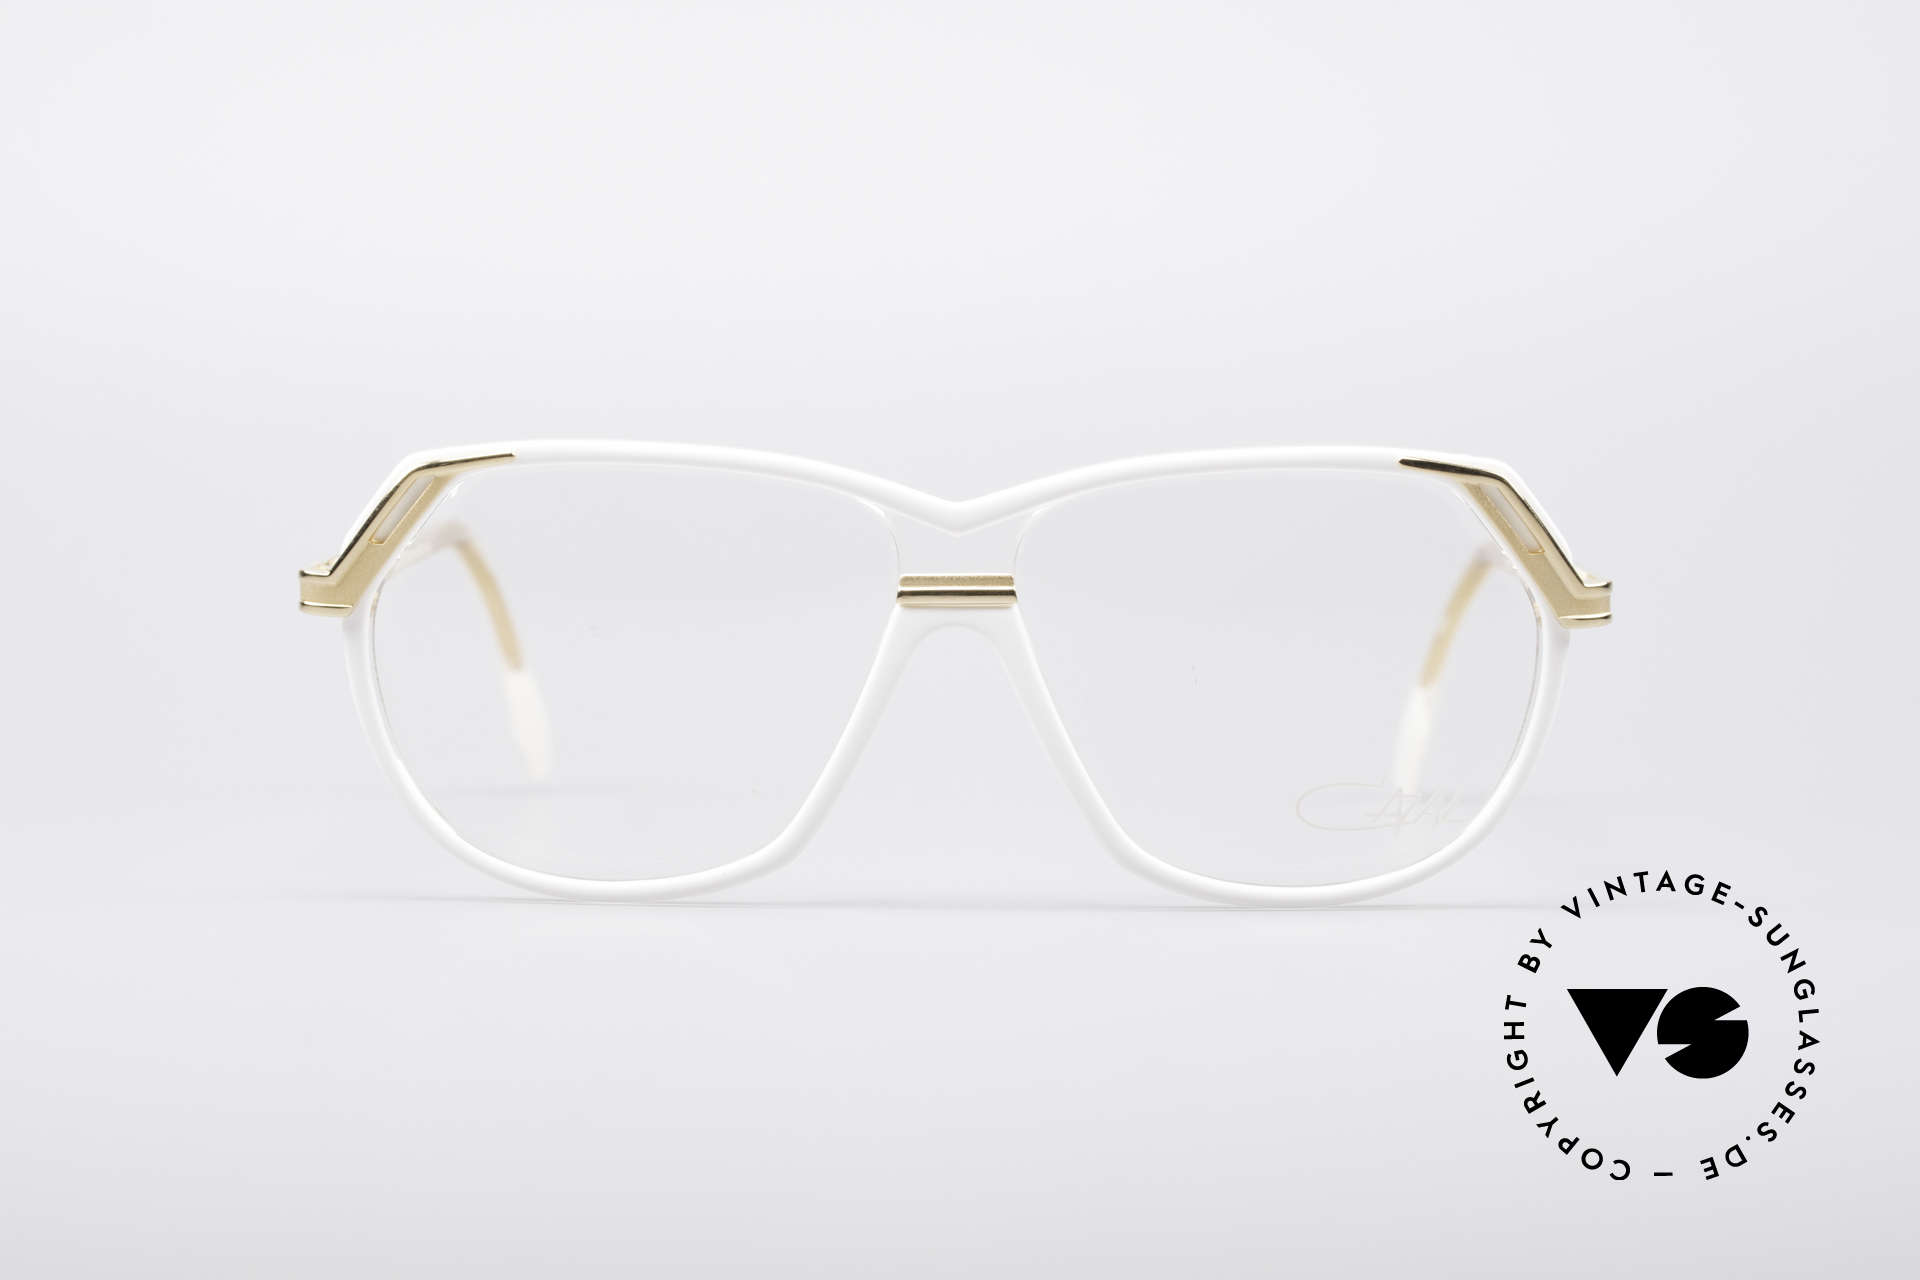 Cazal 339 90's Vintage Designer Specs, great combination of materials and colors, Made for Women